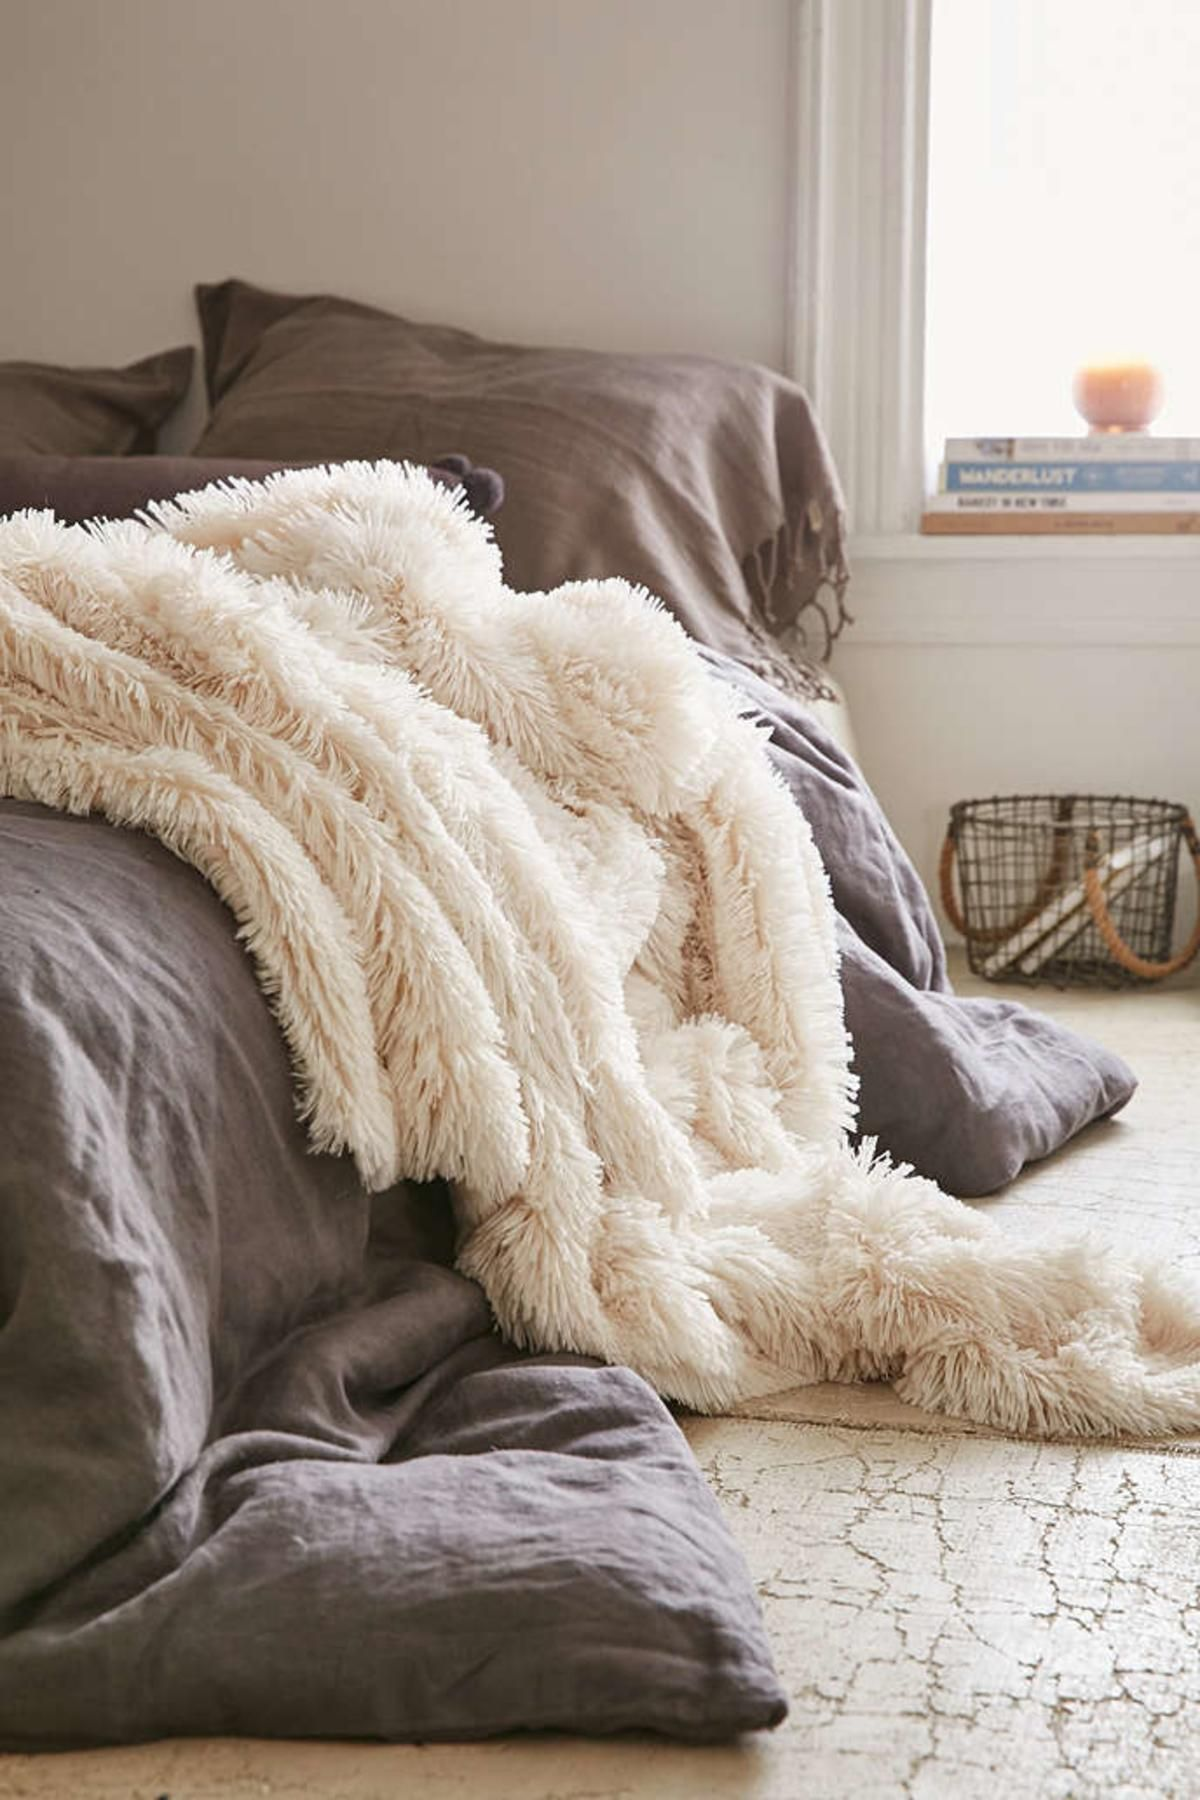 7 Ways to Make Your Room Cozy for Fall | Cozy, Winter bedding and Dorm